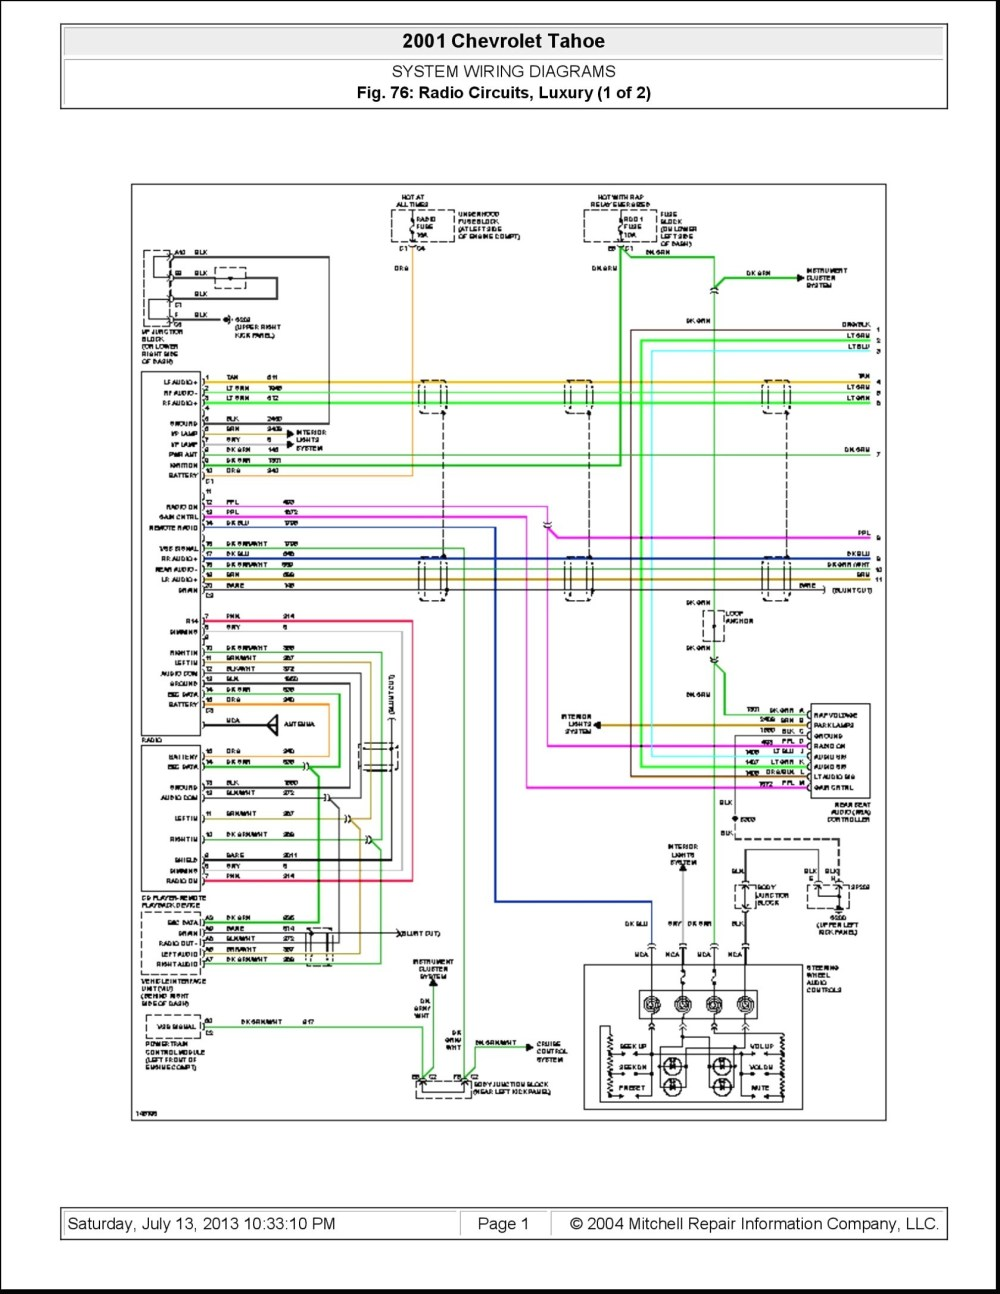 medium resolution of 2012 traverse wiring diagram wiring diagram database 2009 chevy traverse wiring diagram 2012 traverse wiring diagram